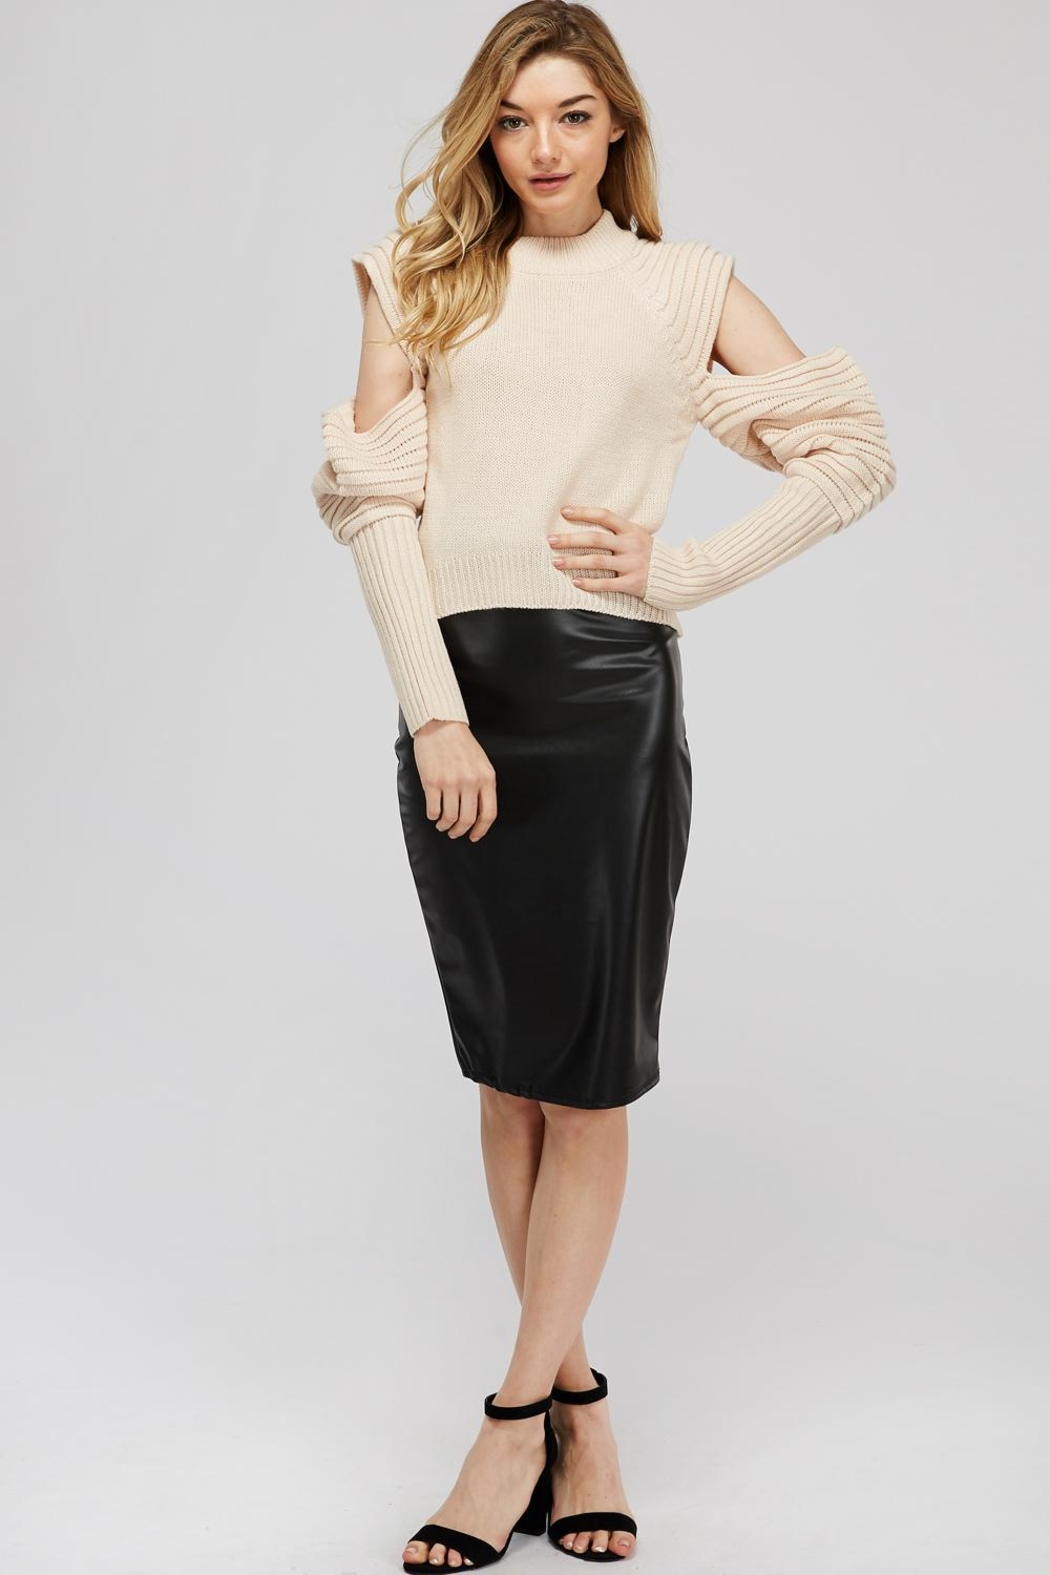 K too Pu Pencil Skirt - Back Cropped Image